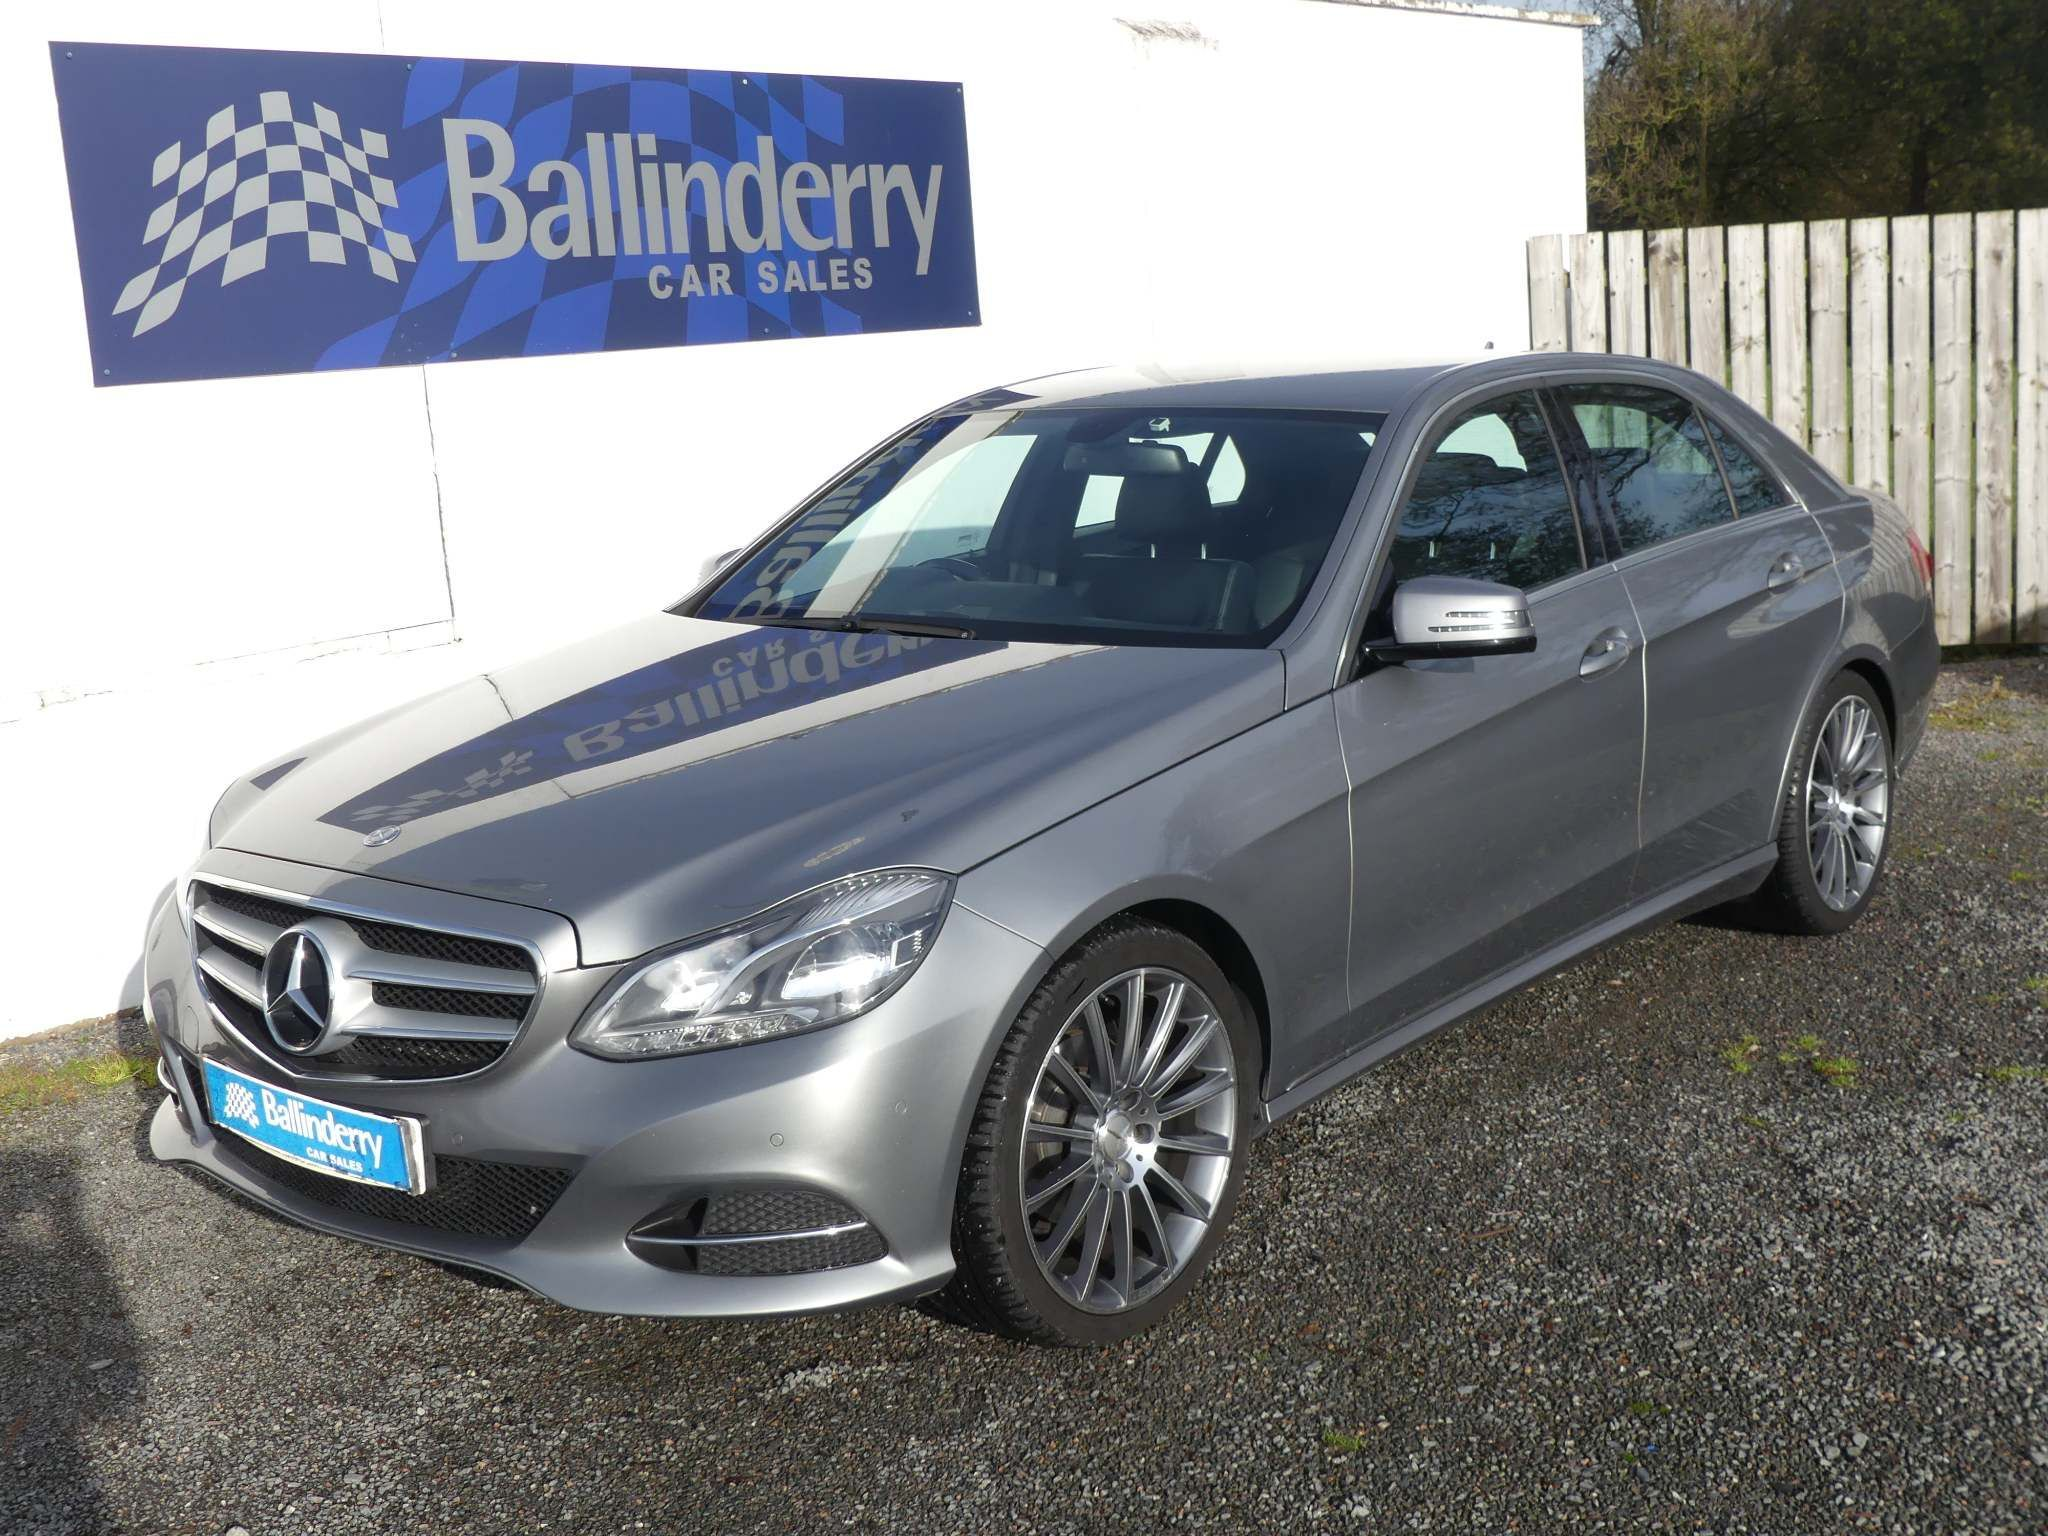 2013 MERCEDES BENZ E Class 2.1 E220 CDI SE 7G-Tronic Plus Diesel Automatic 19″ ALLOYS–LEATHER–SAT NAV – Ballinderry Car Sales Moira